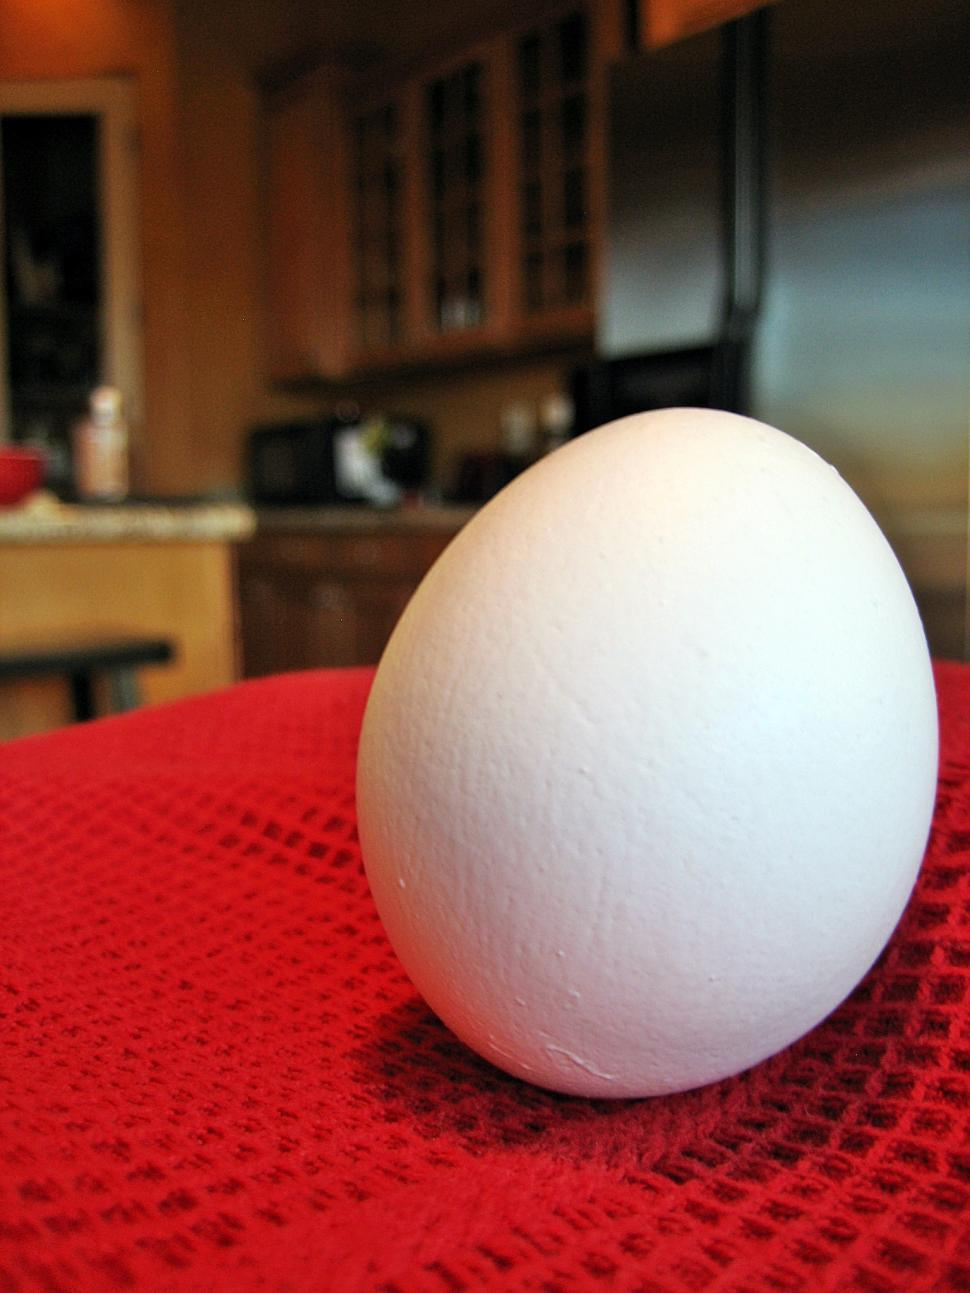 Download Free Stock HD Photo of Egg in Kitchen Online